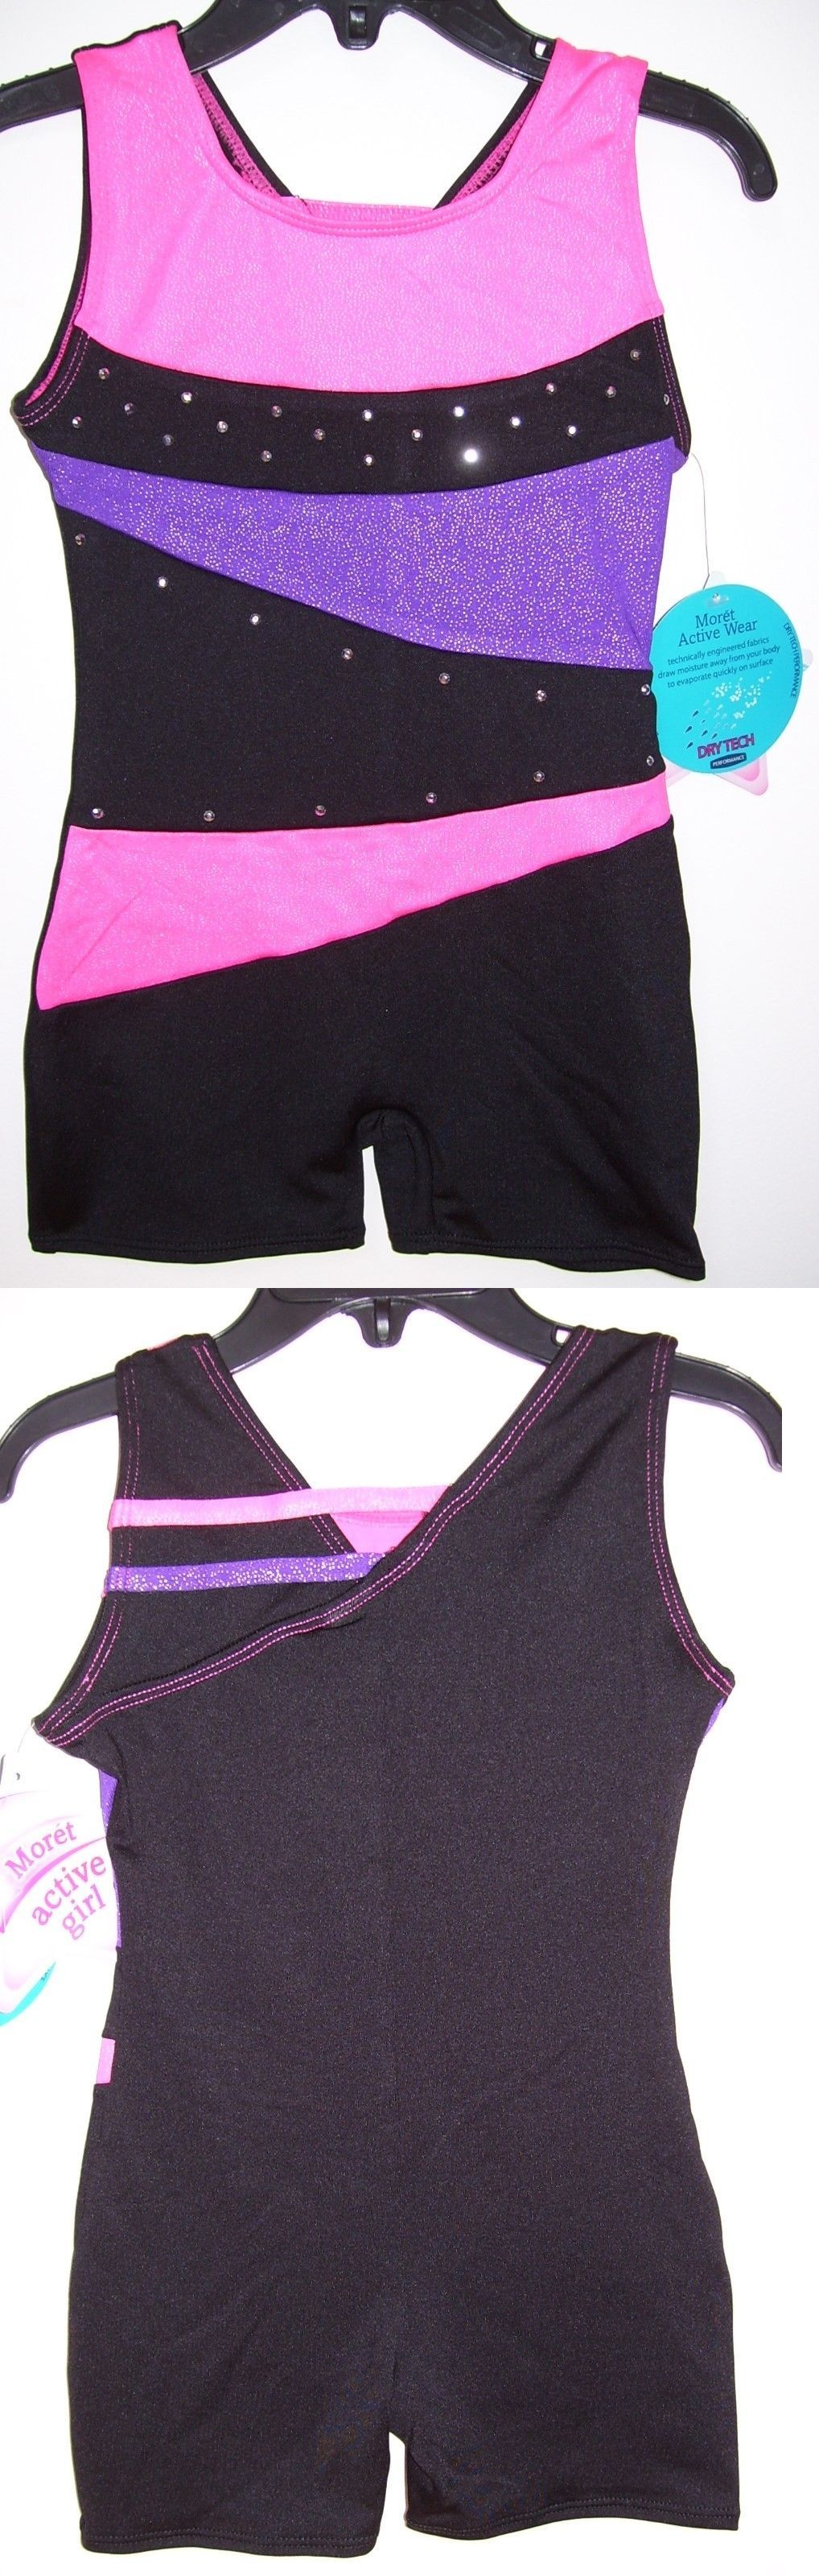 a9e40b909c6b Clothing 159167  Moret Active Girl Rainbow Triangle Gymnastic Tank ...